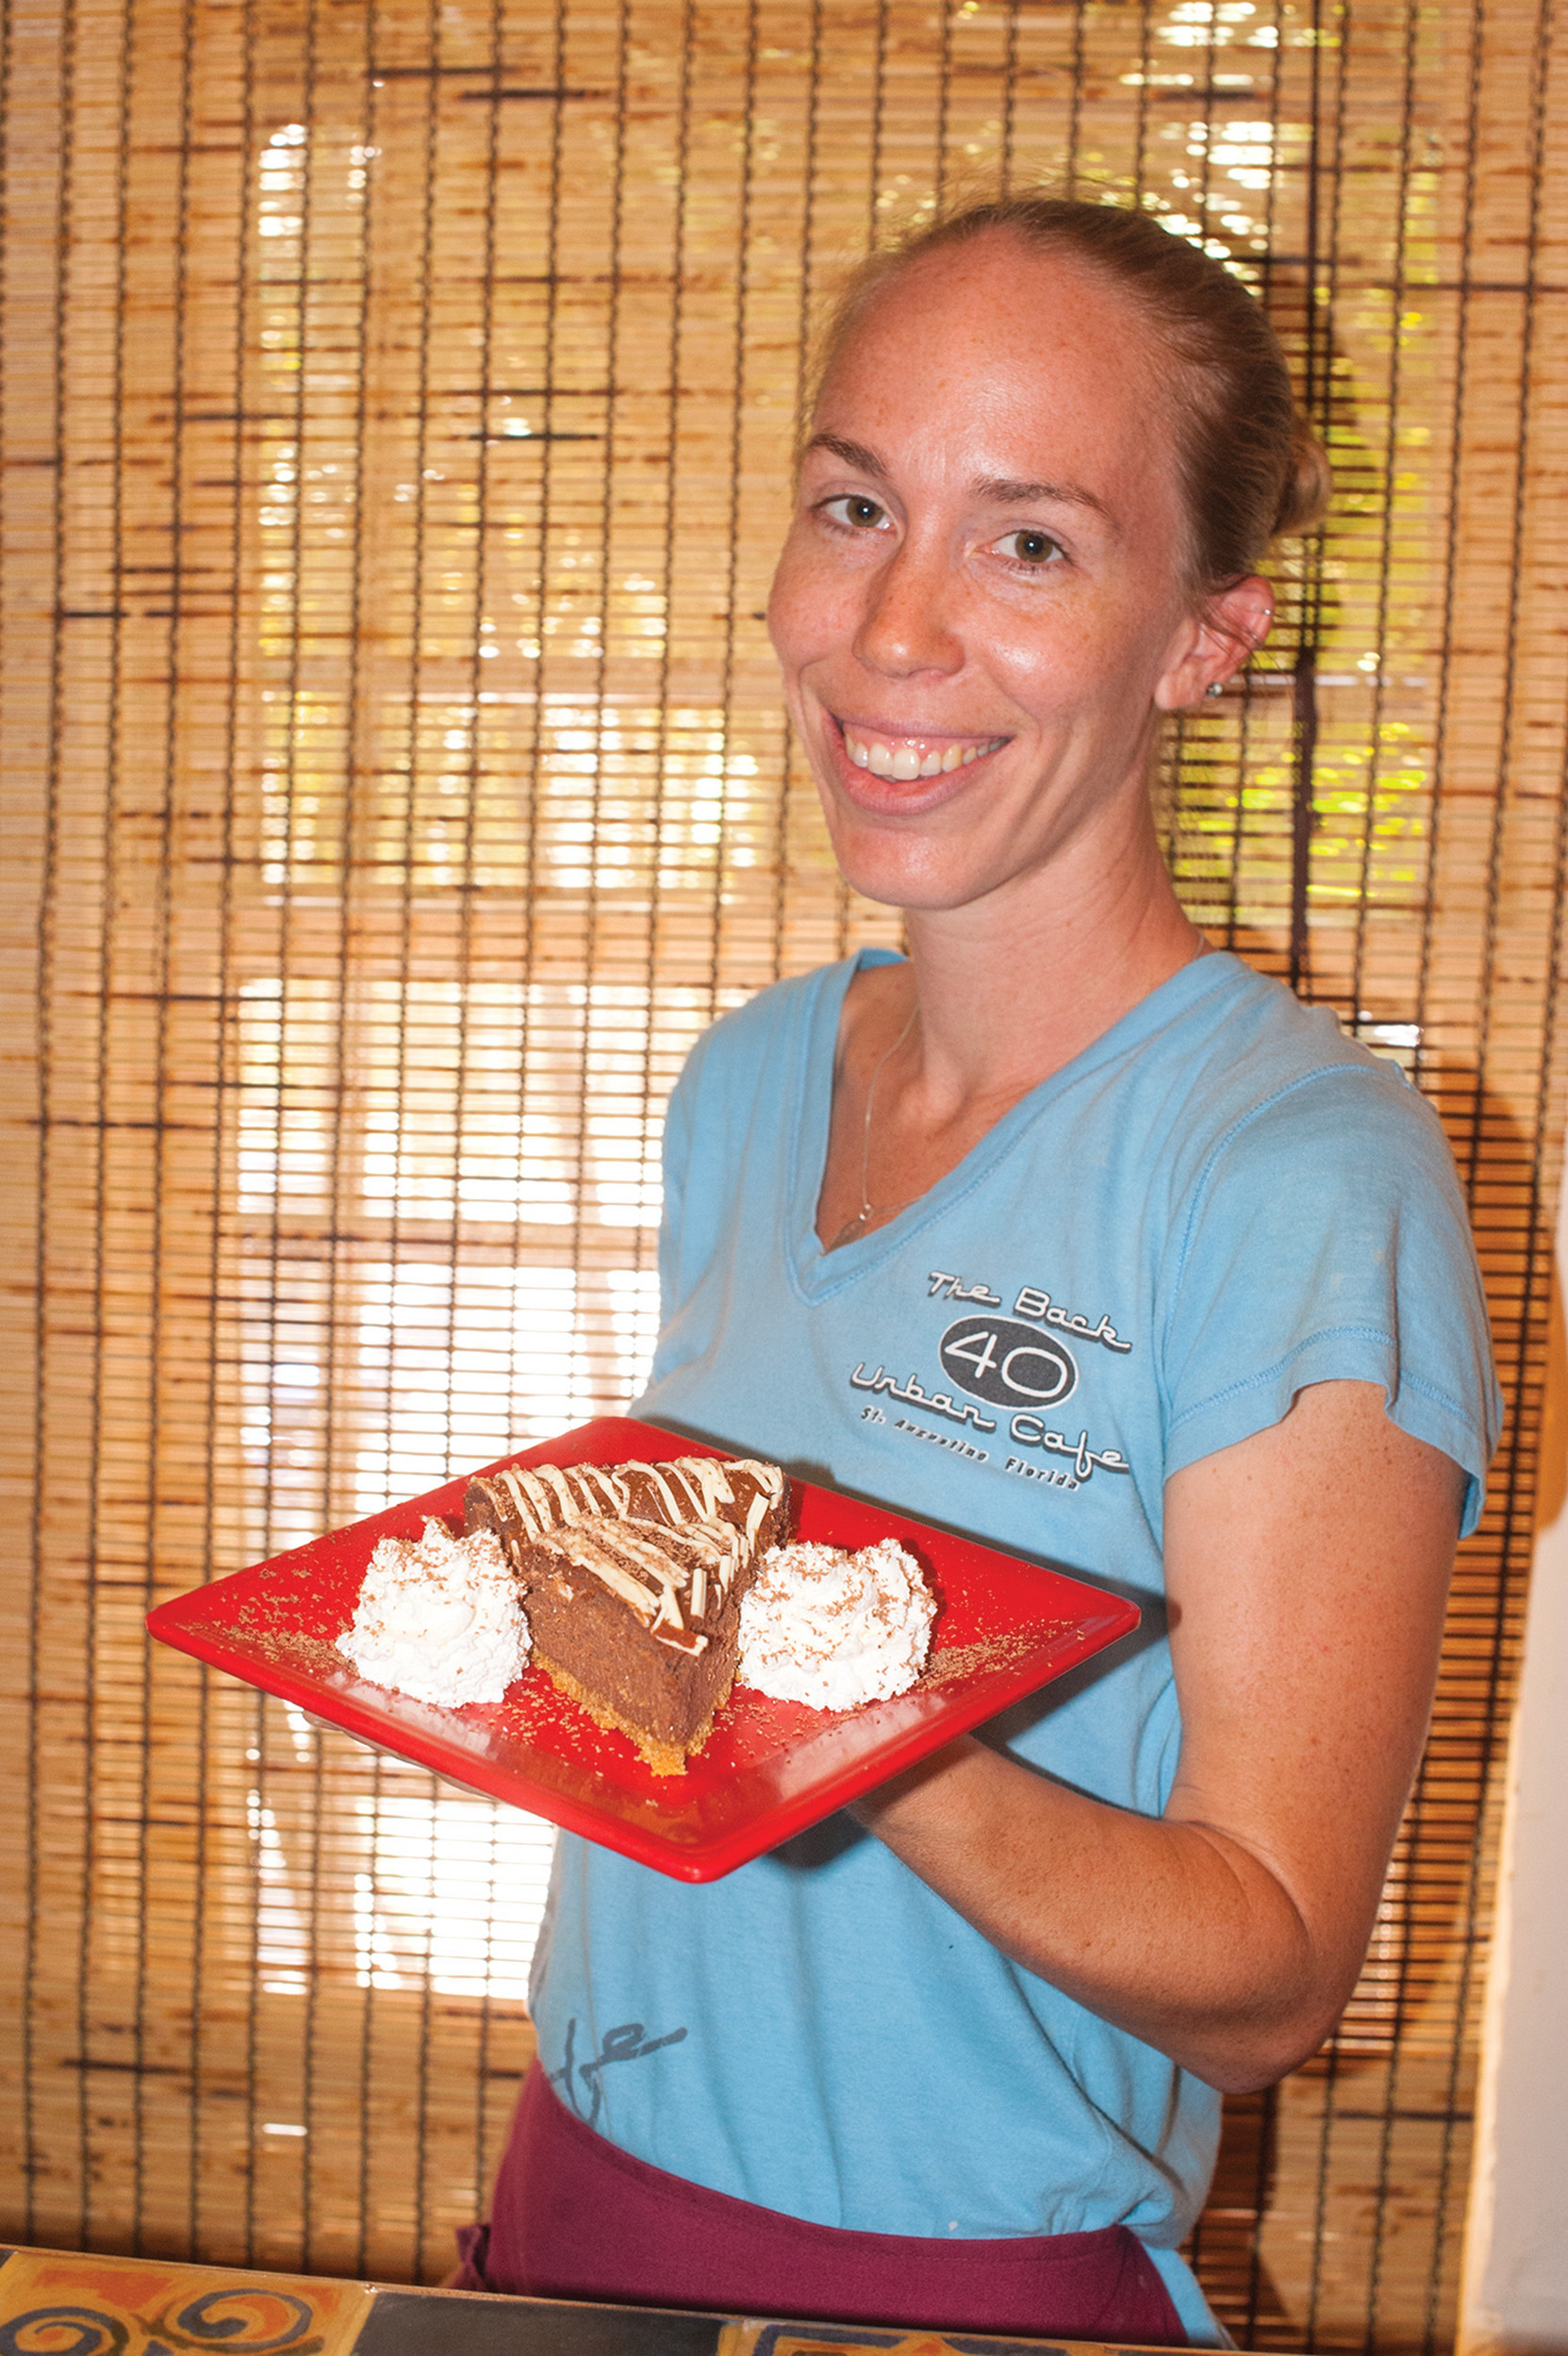 Ariel Edwards of The Back 40 Urban Café in St. Augustine presents the triple chocolate Kahlúa cheesecake.